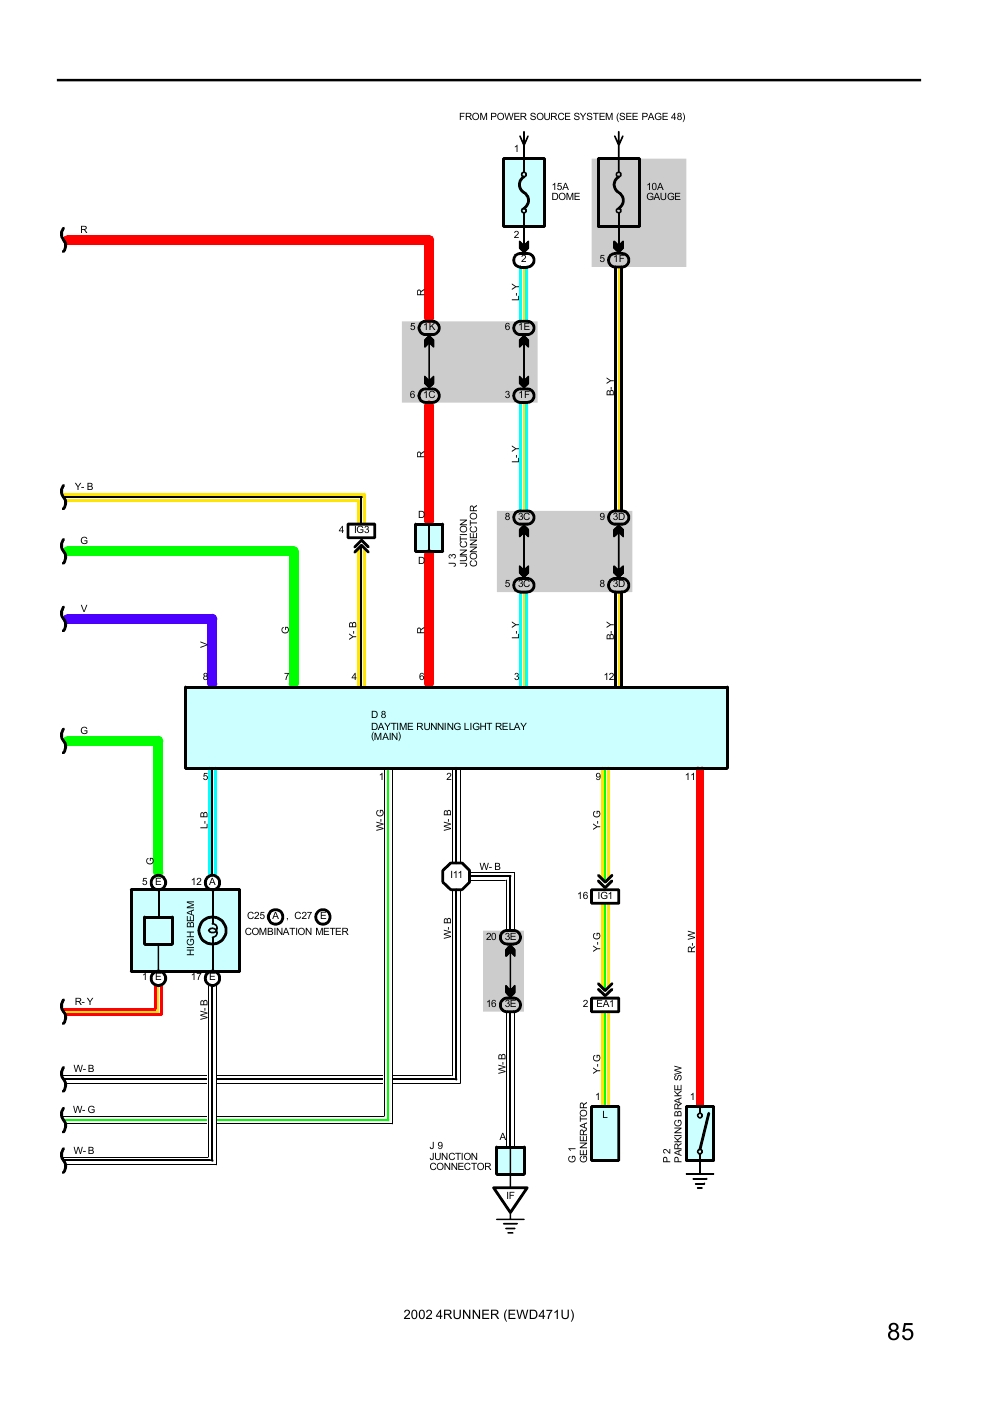 Wiring Diagram Hilux Stereo : Weird headlight issue help toyota runner forum